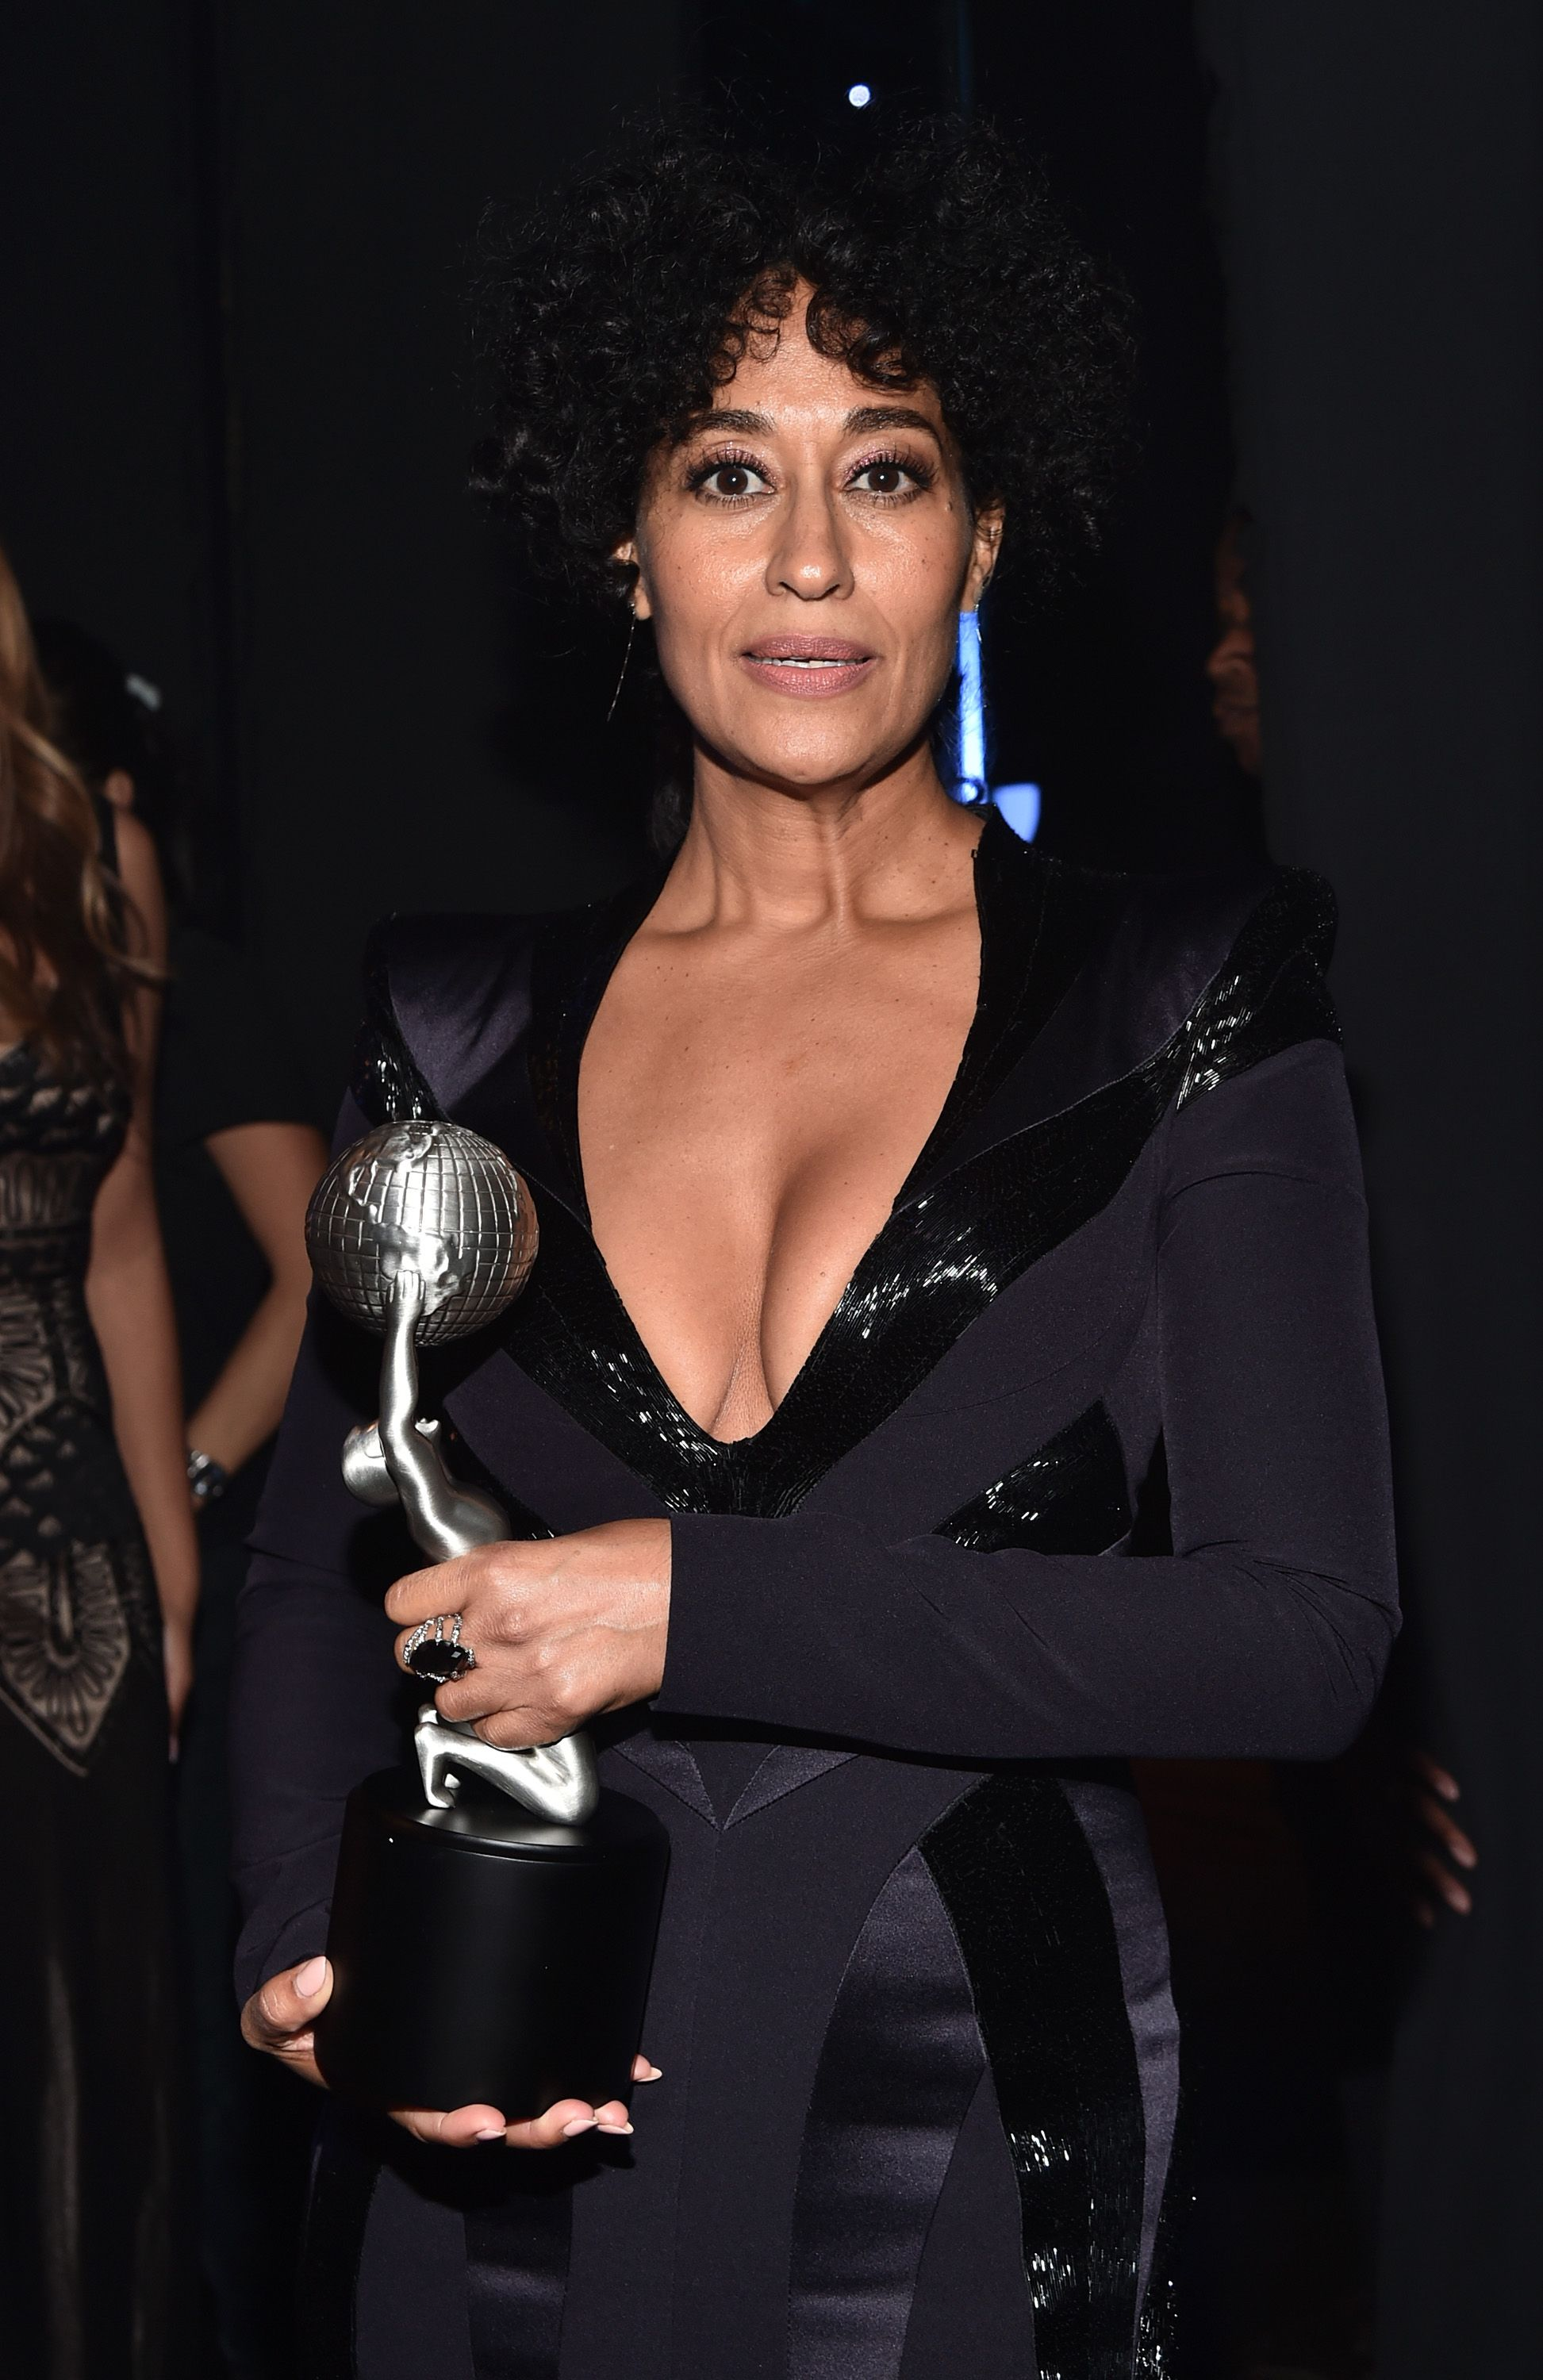 Tracee Ellis Ross attending the 47th NAACP Image Awards presented by TV One at Pasadena Civic Auditorium in California on February 5, 2016. | Photo: Getty Images